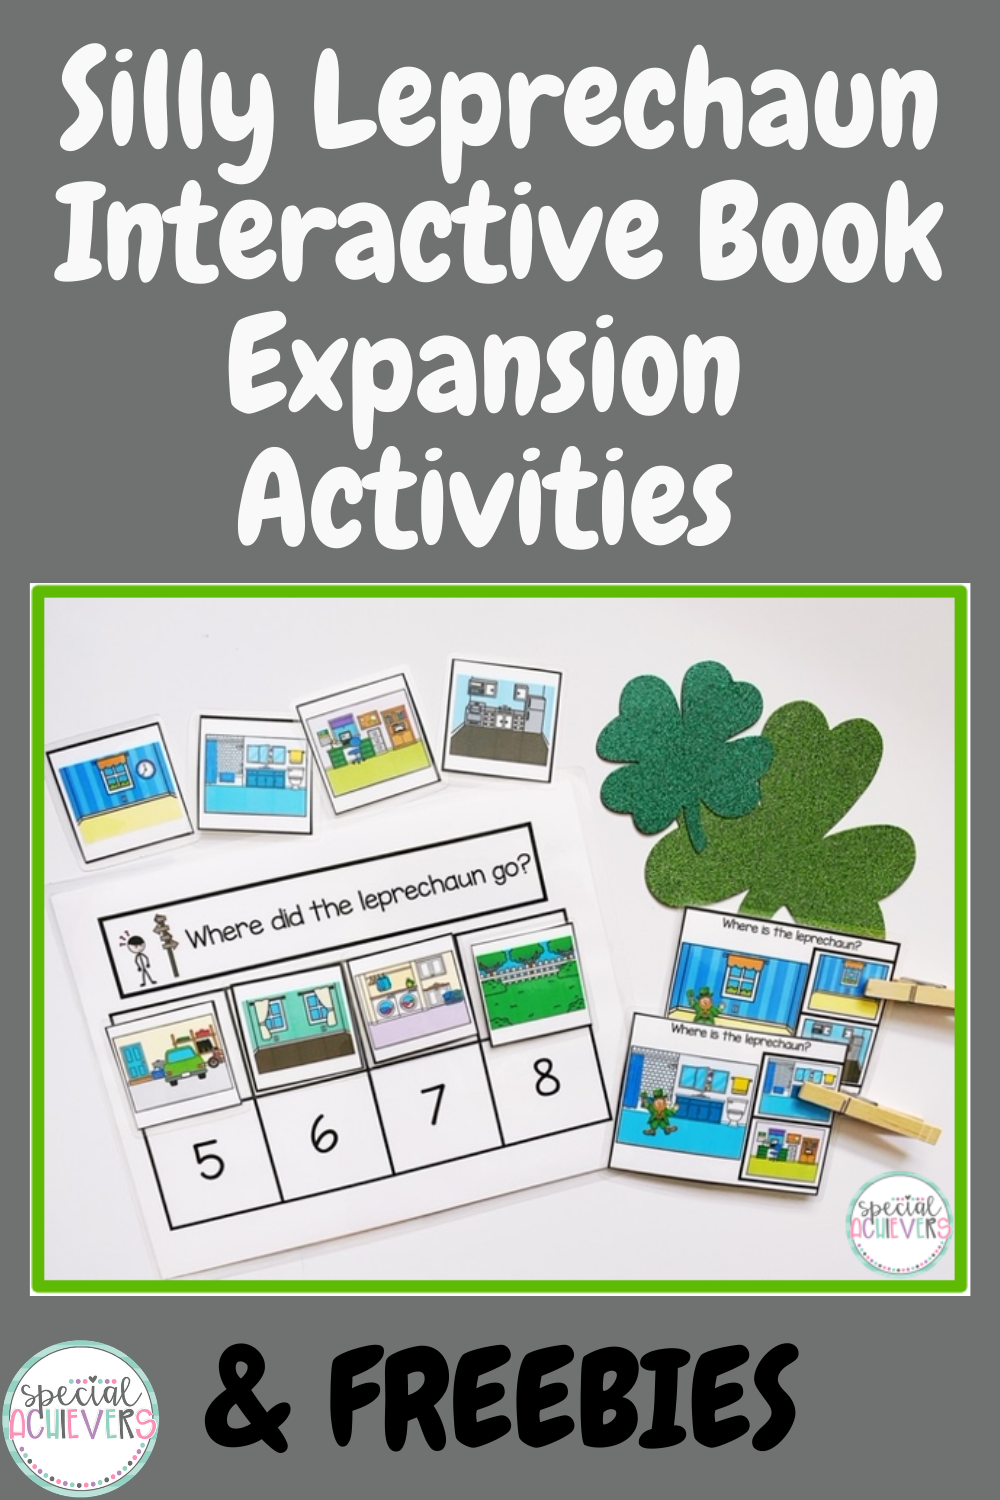 """The text """"Silly Leprechaun Interactive Book Expansion Activities & FREEBIES"""" is written above and below the image of the sequencing activities and clip cards."""